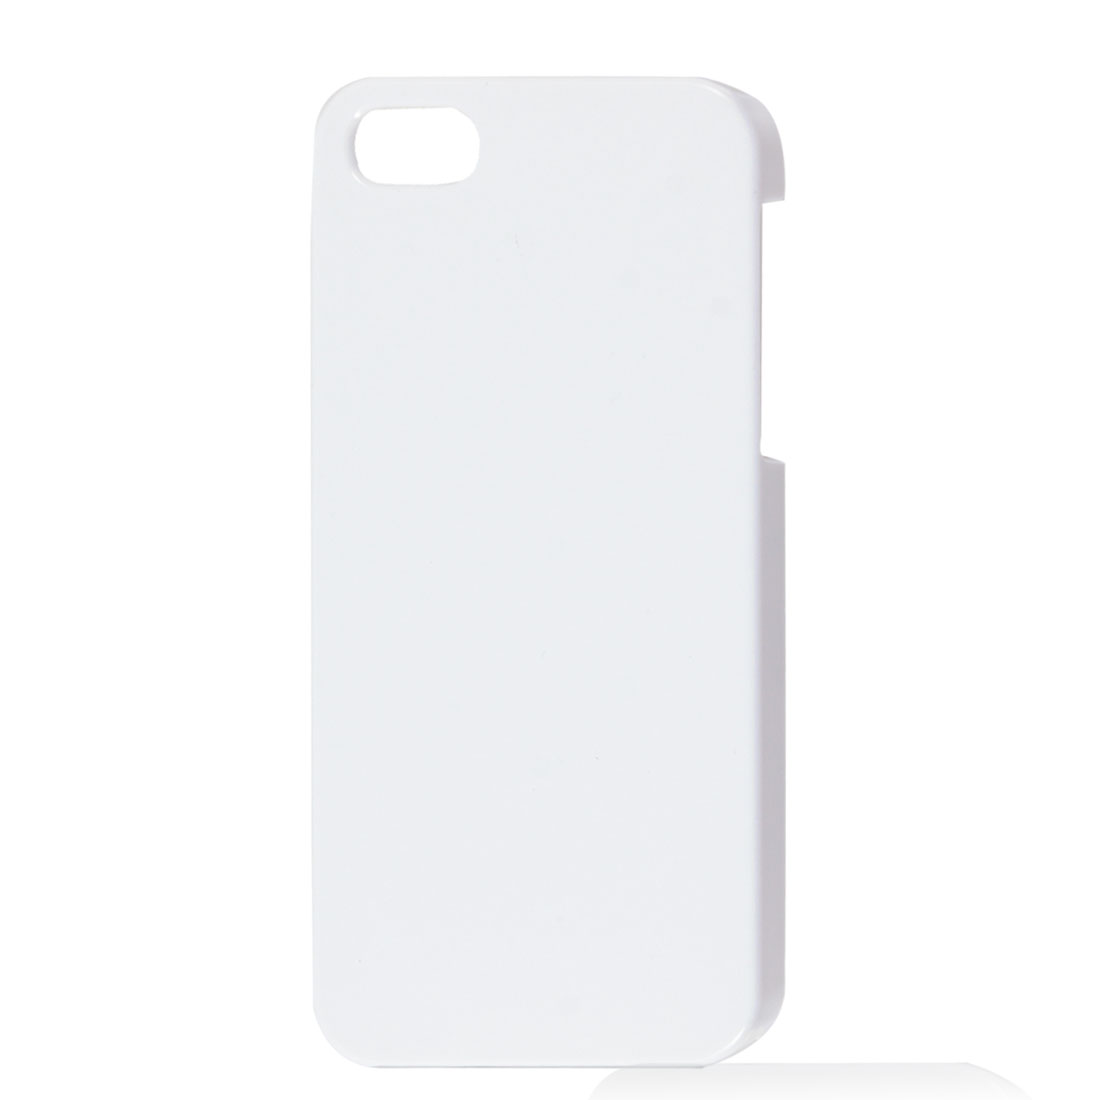 White Plastic Hard Back Case Cover for Apple iPhone 5 5G 5th